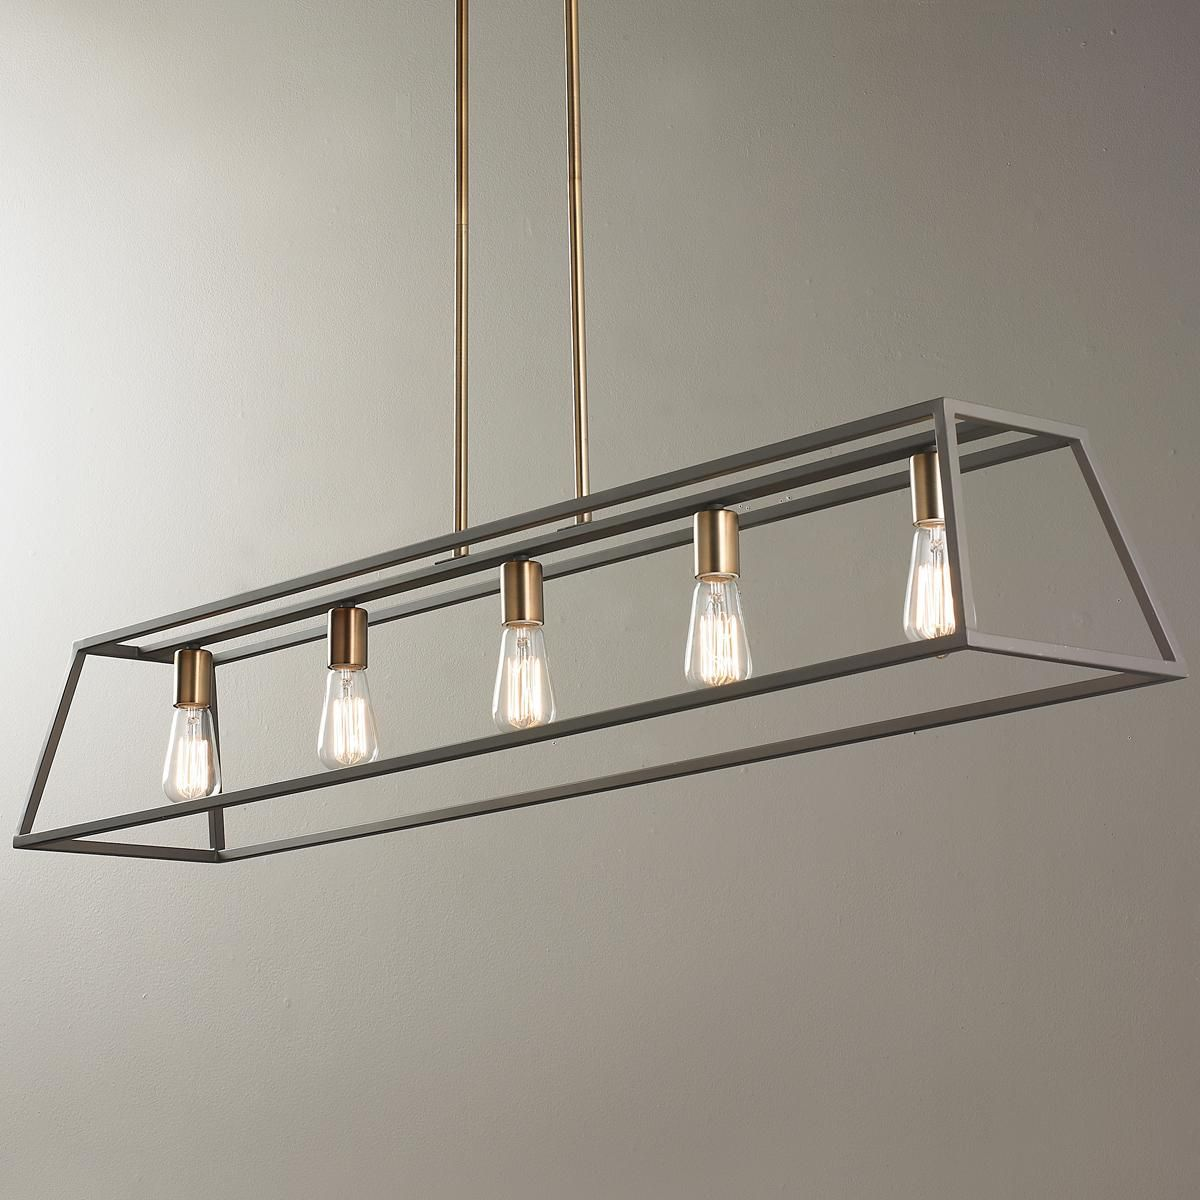 Small Simple Chandelier Sleek Minimalist Island Chandelier 5 Light In 2019 Mixed